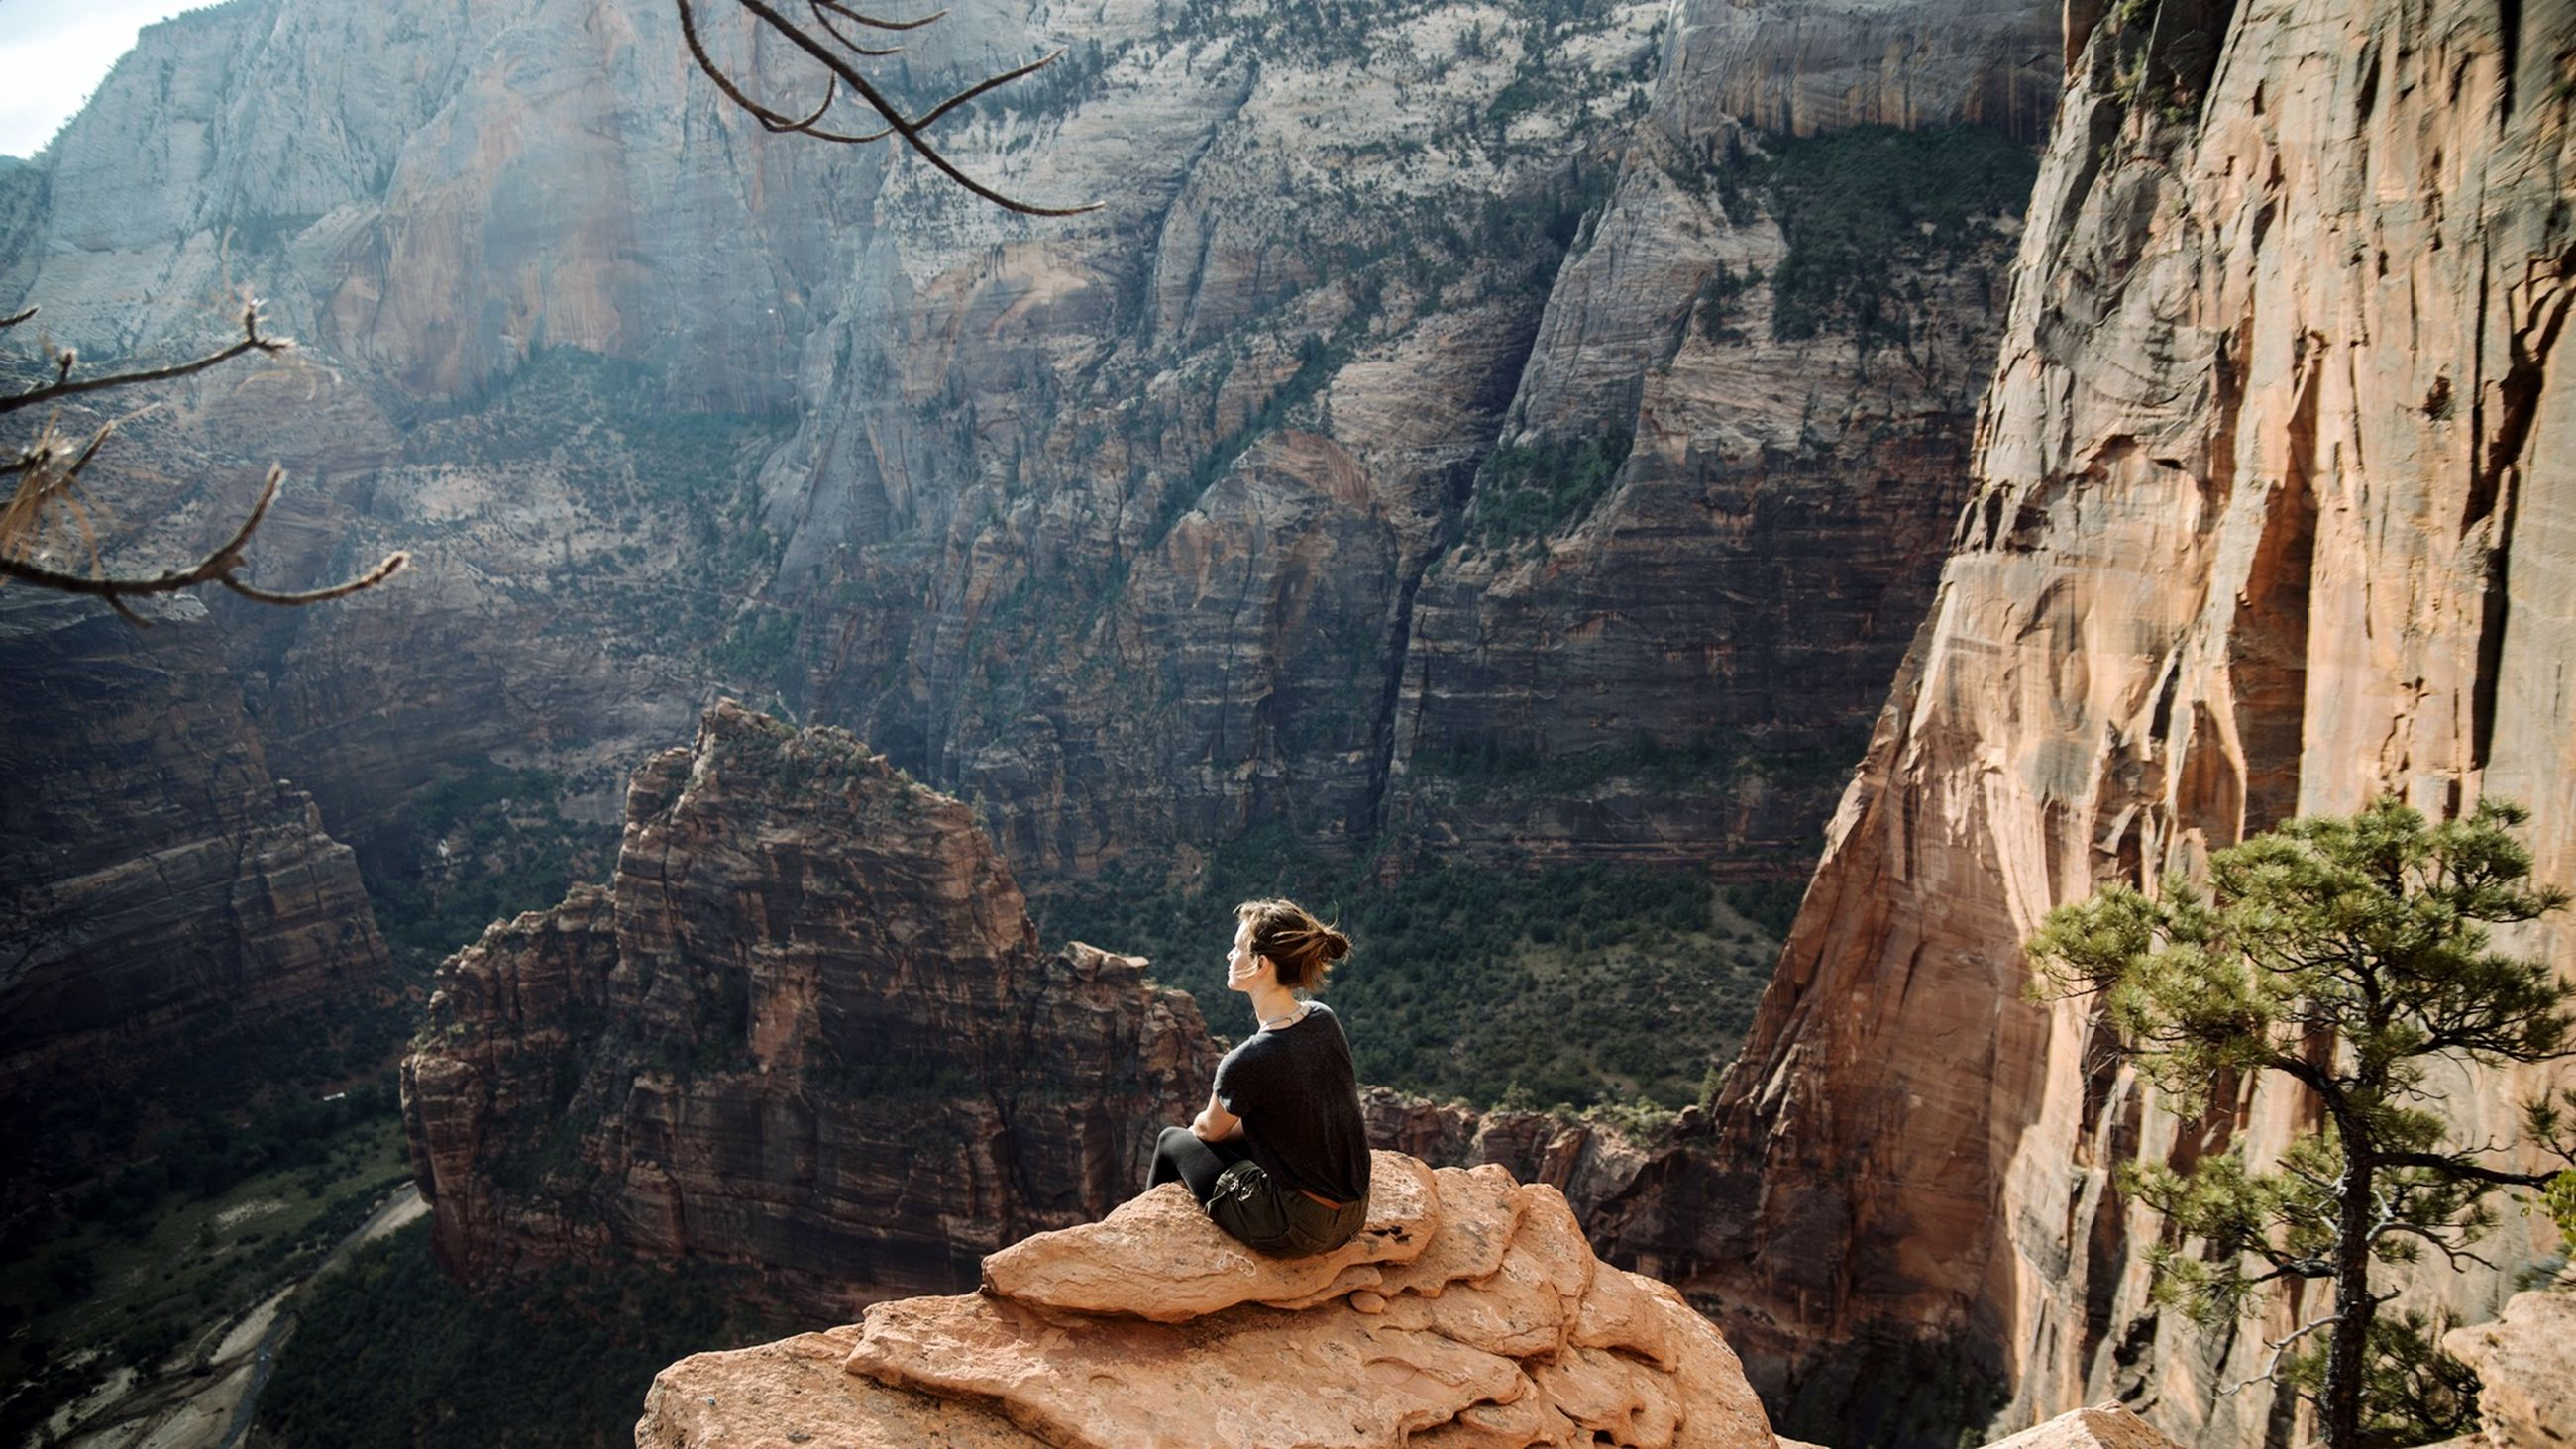 rock - object, rock formation, lifestyles, leisure activity, mountain, men, rear view, rock, tranquility, tourism, cliff, nature, tranquil scene, travel, tourist, scenics, person, rocky mountains